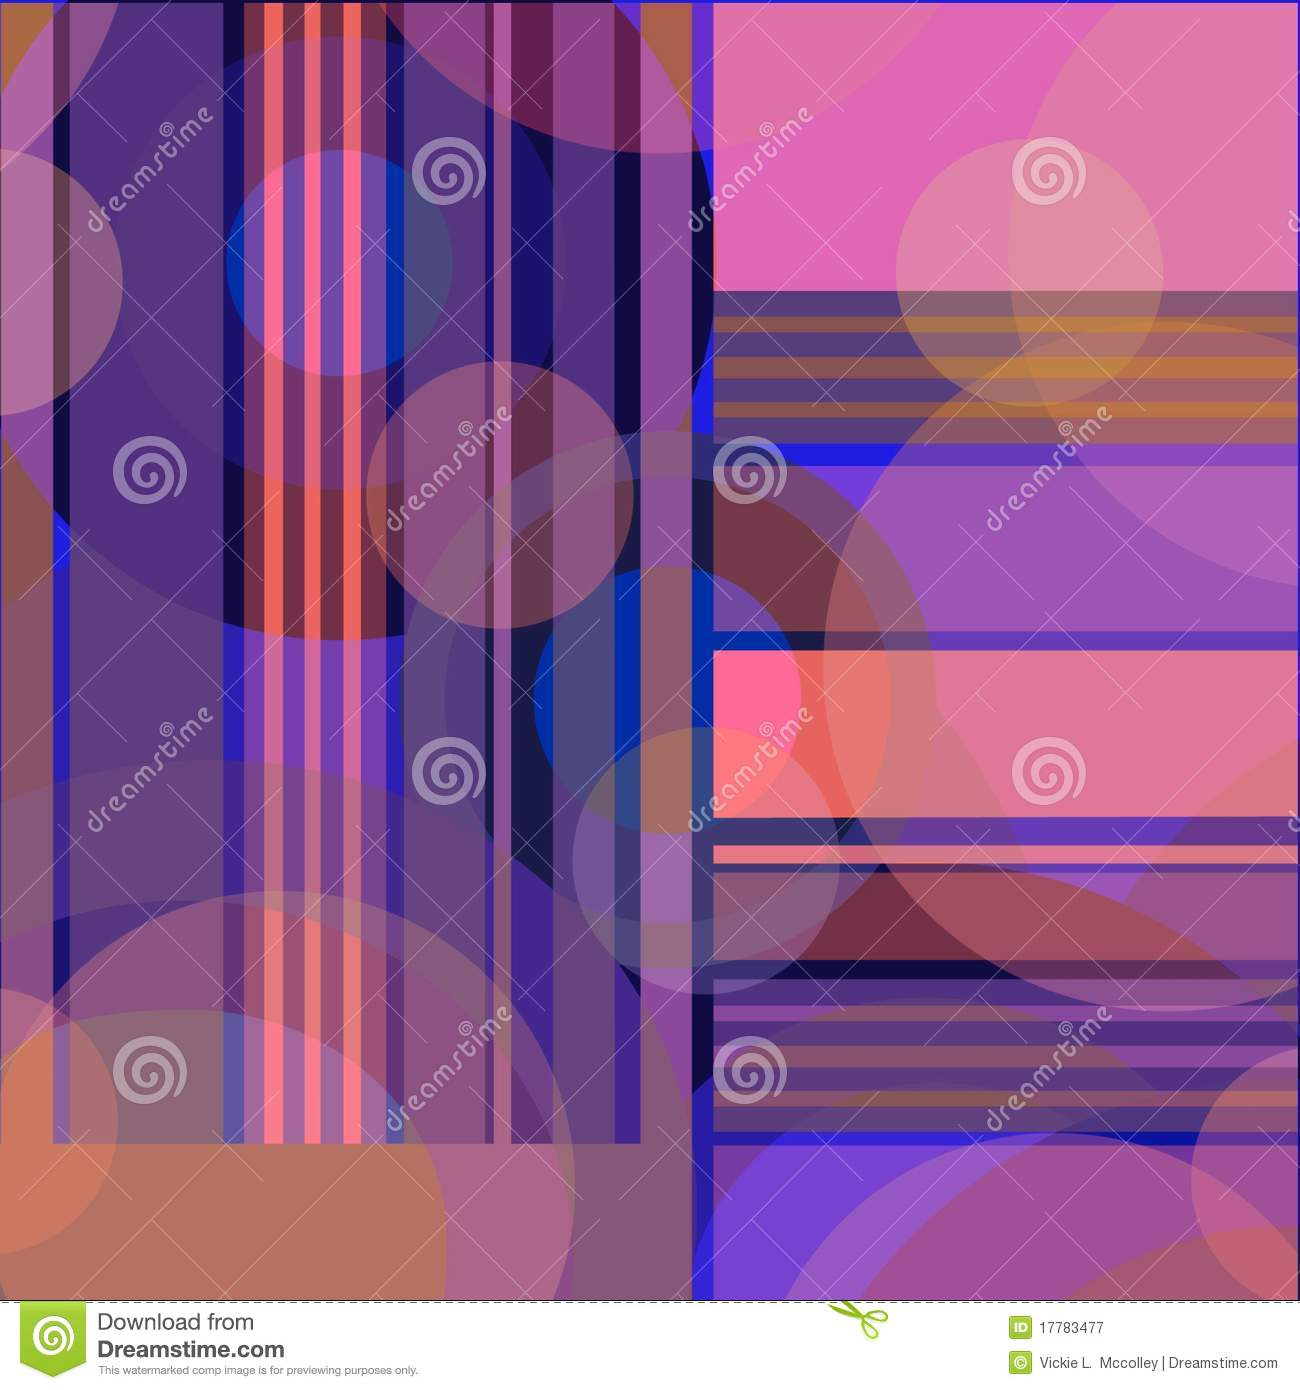 groovy wallpaper royalty free stock photography image